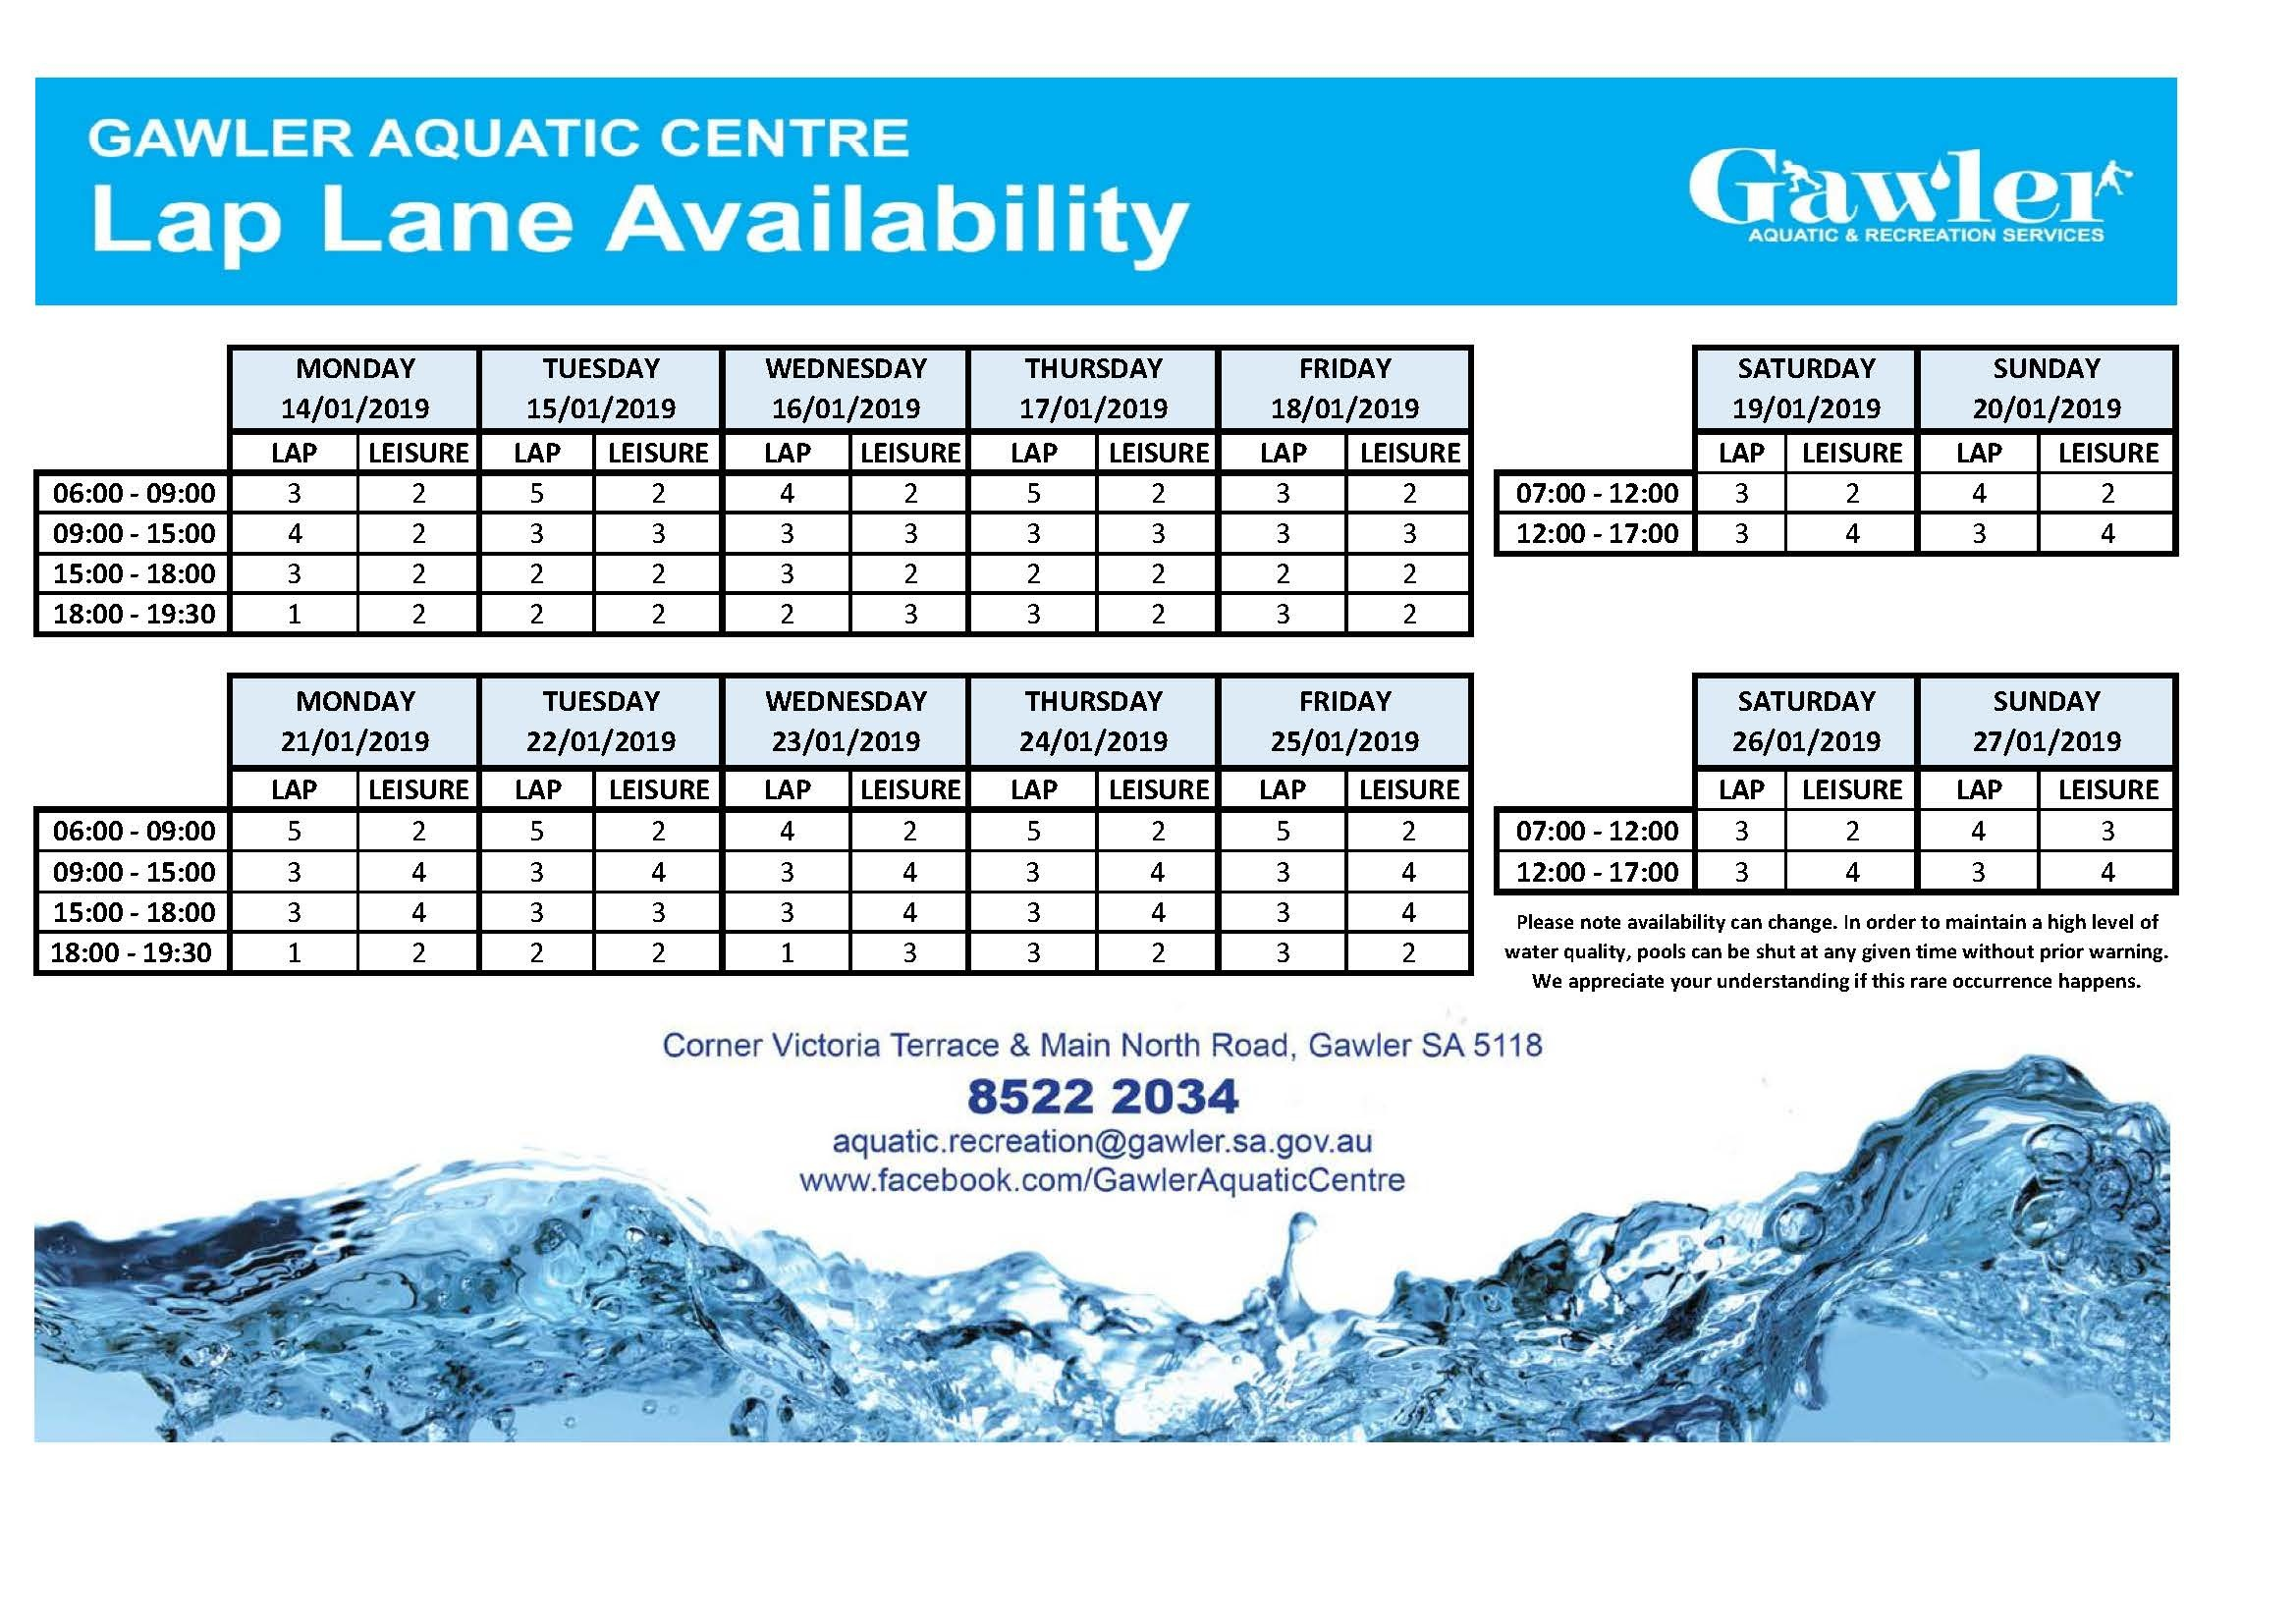 Copy-of-CR19-2968-Gawler-Aquatic-Centre-Lap-Lane-Availability-14-01-2019-27-01-2019_Page_1.jpg#asset:12086